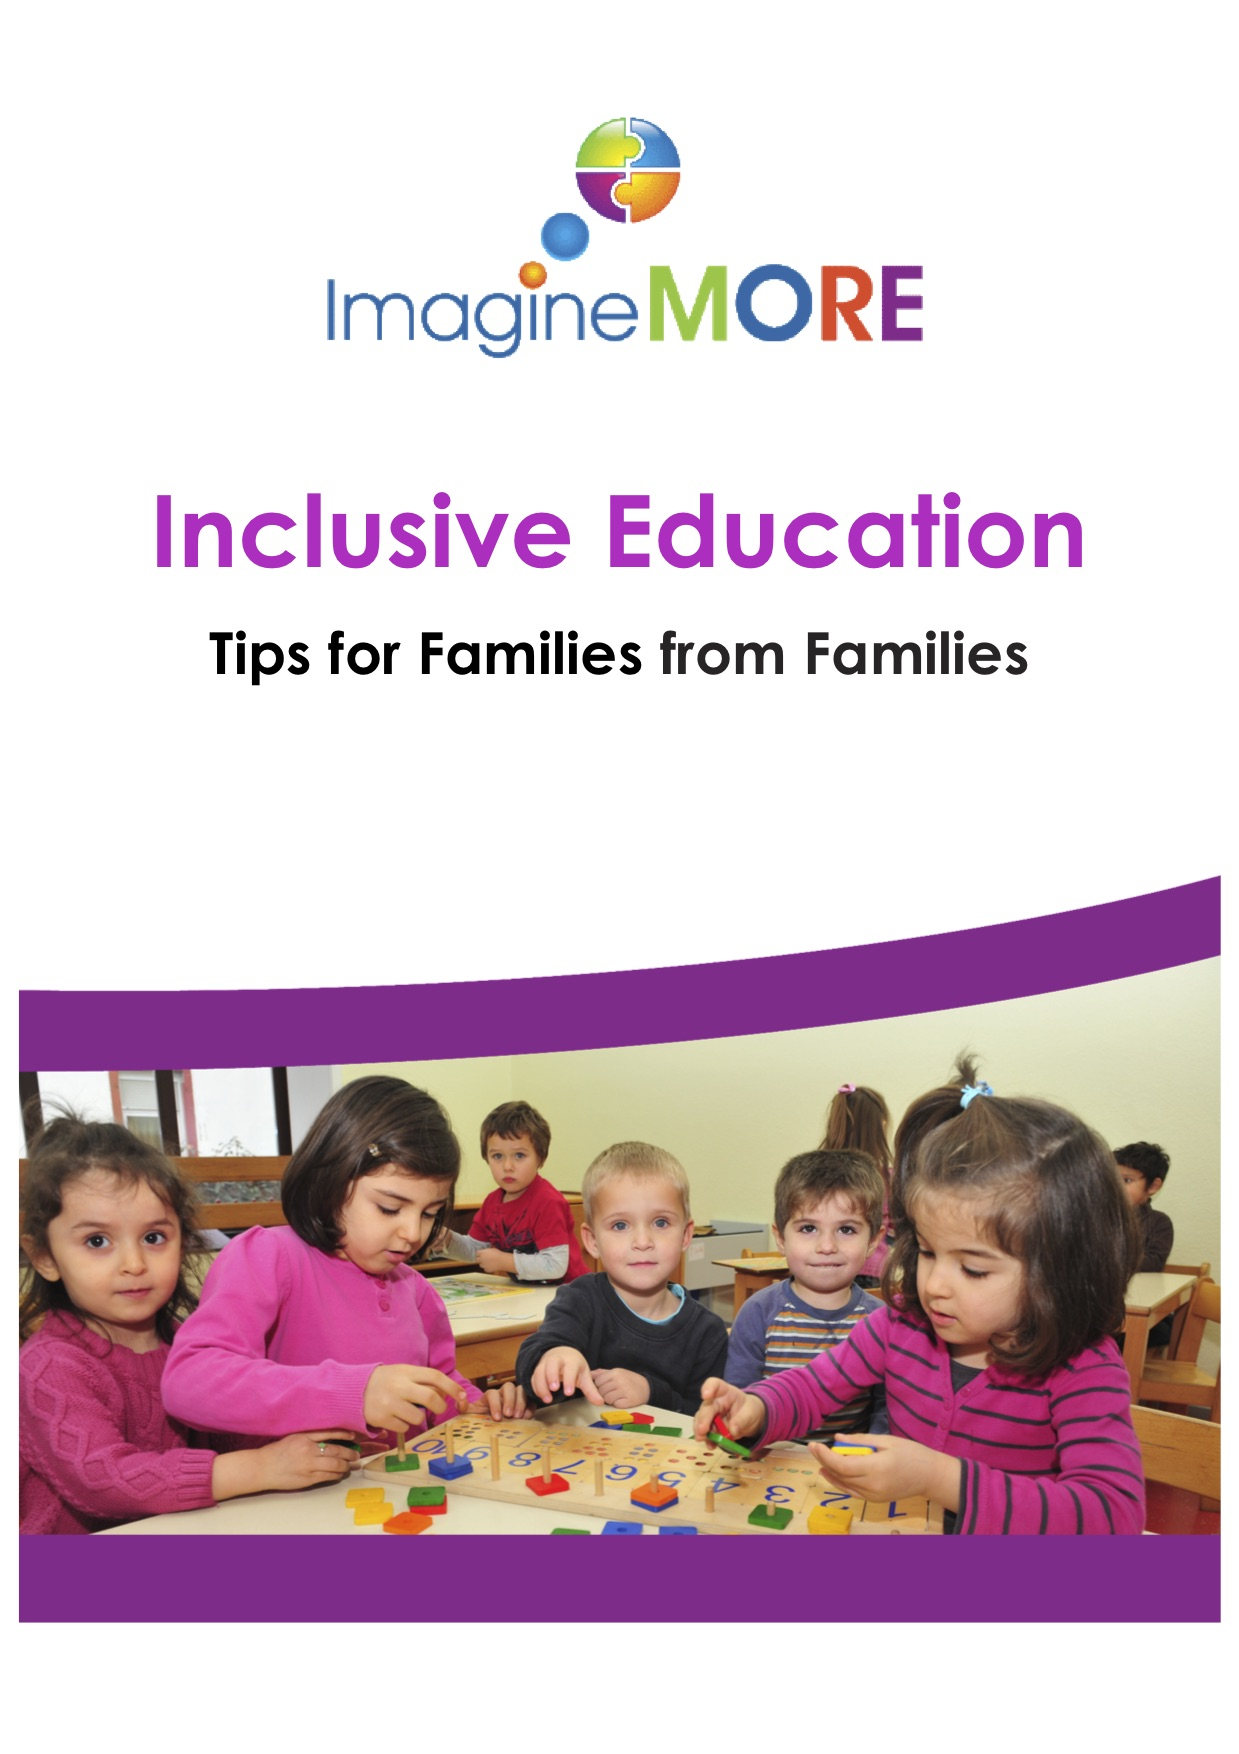 Education Top Tips cover